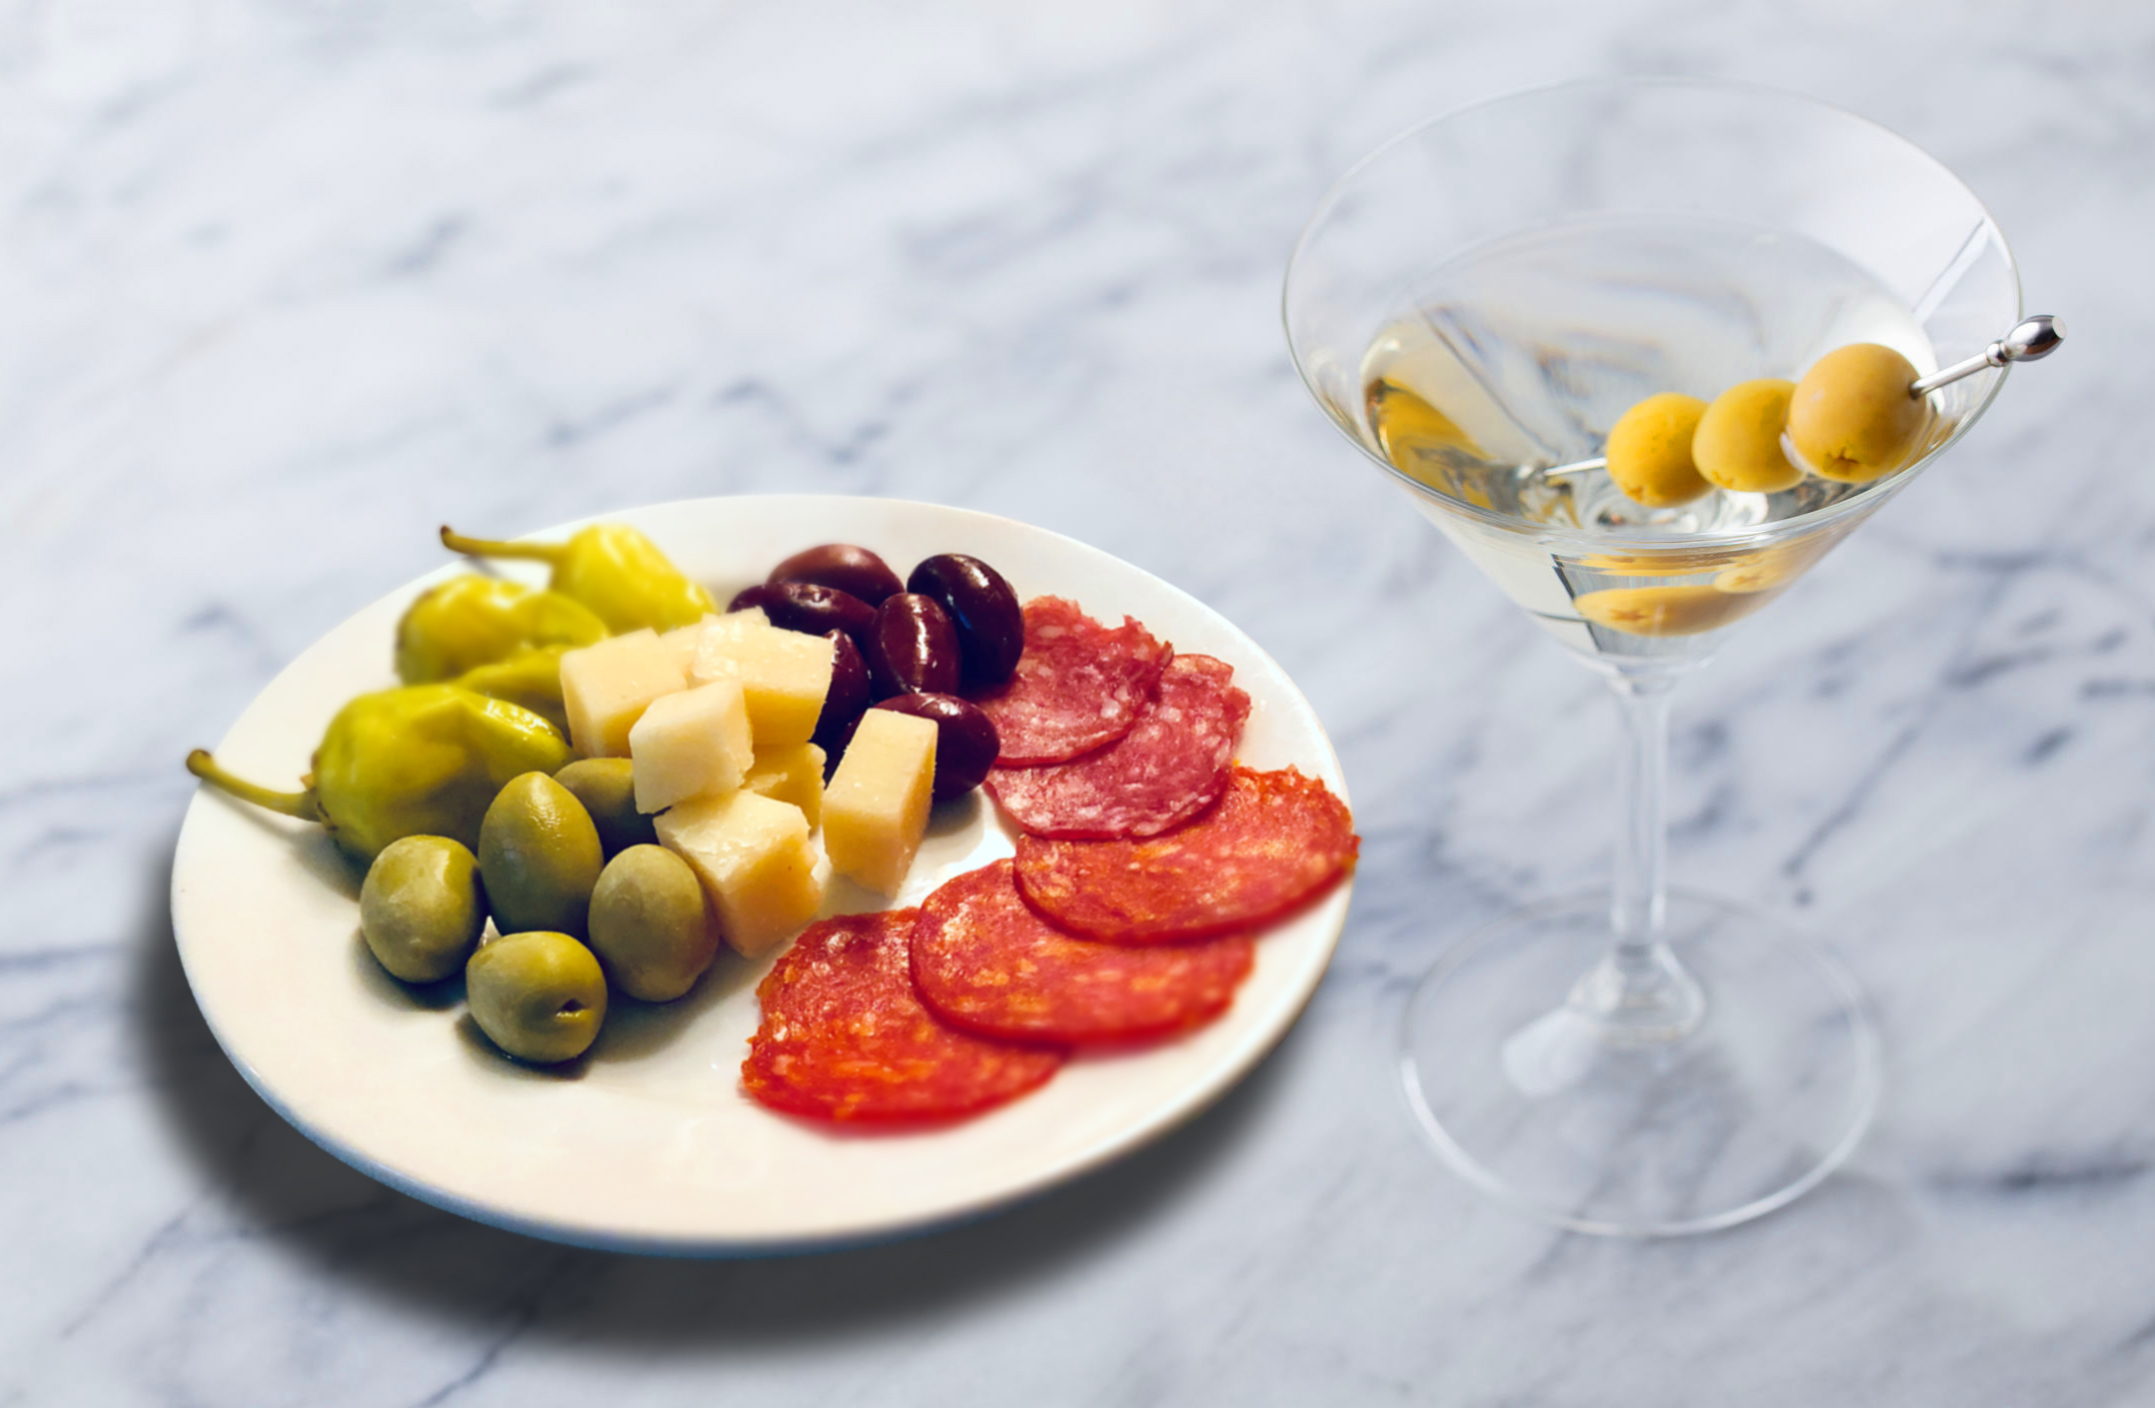 Enjoy a cocktail along with our signature antipasto - You know you are at Primavera when you are warmly welcomed with a plate of fine antipasto and a basket of fresh traditional italian bread.